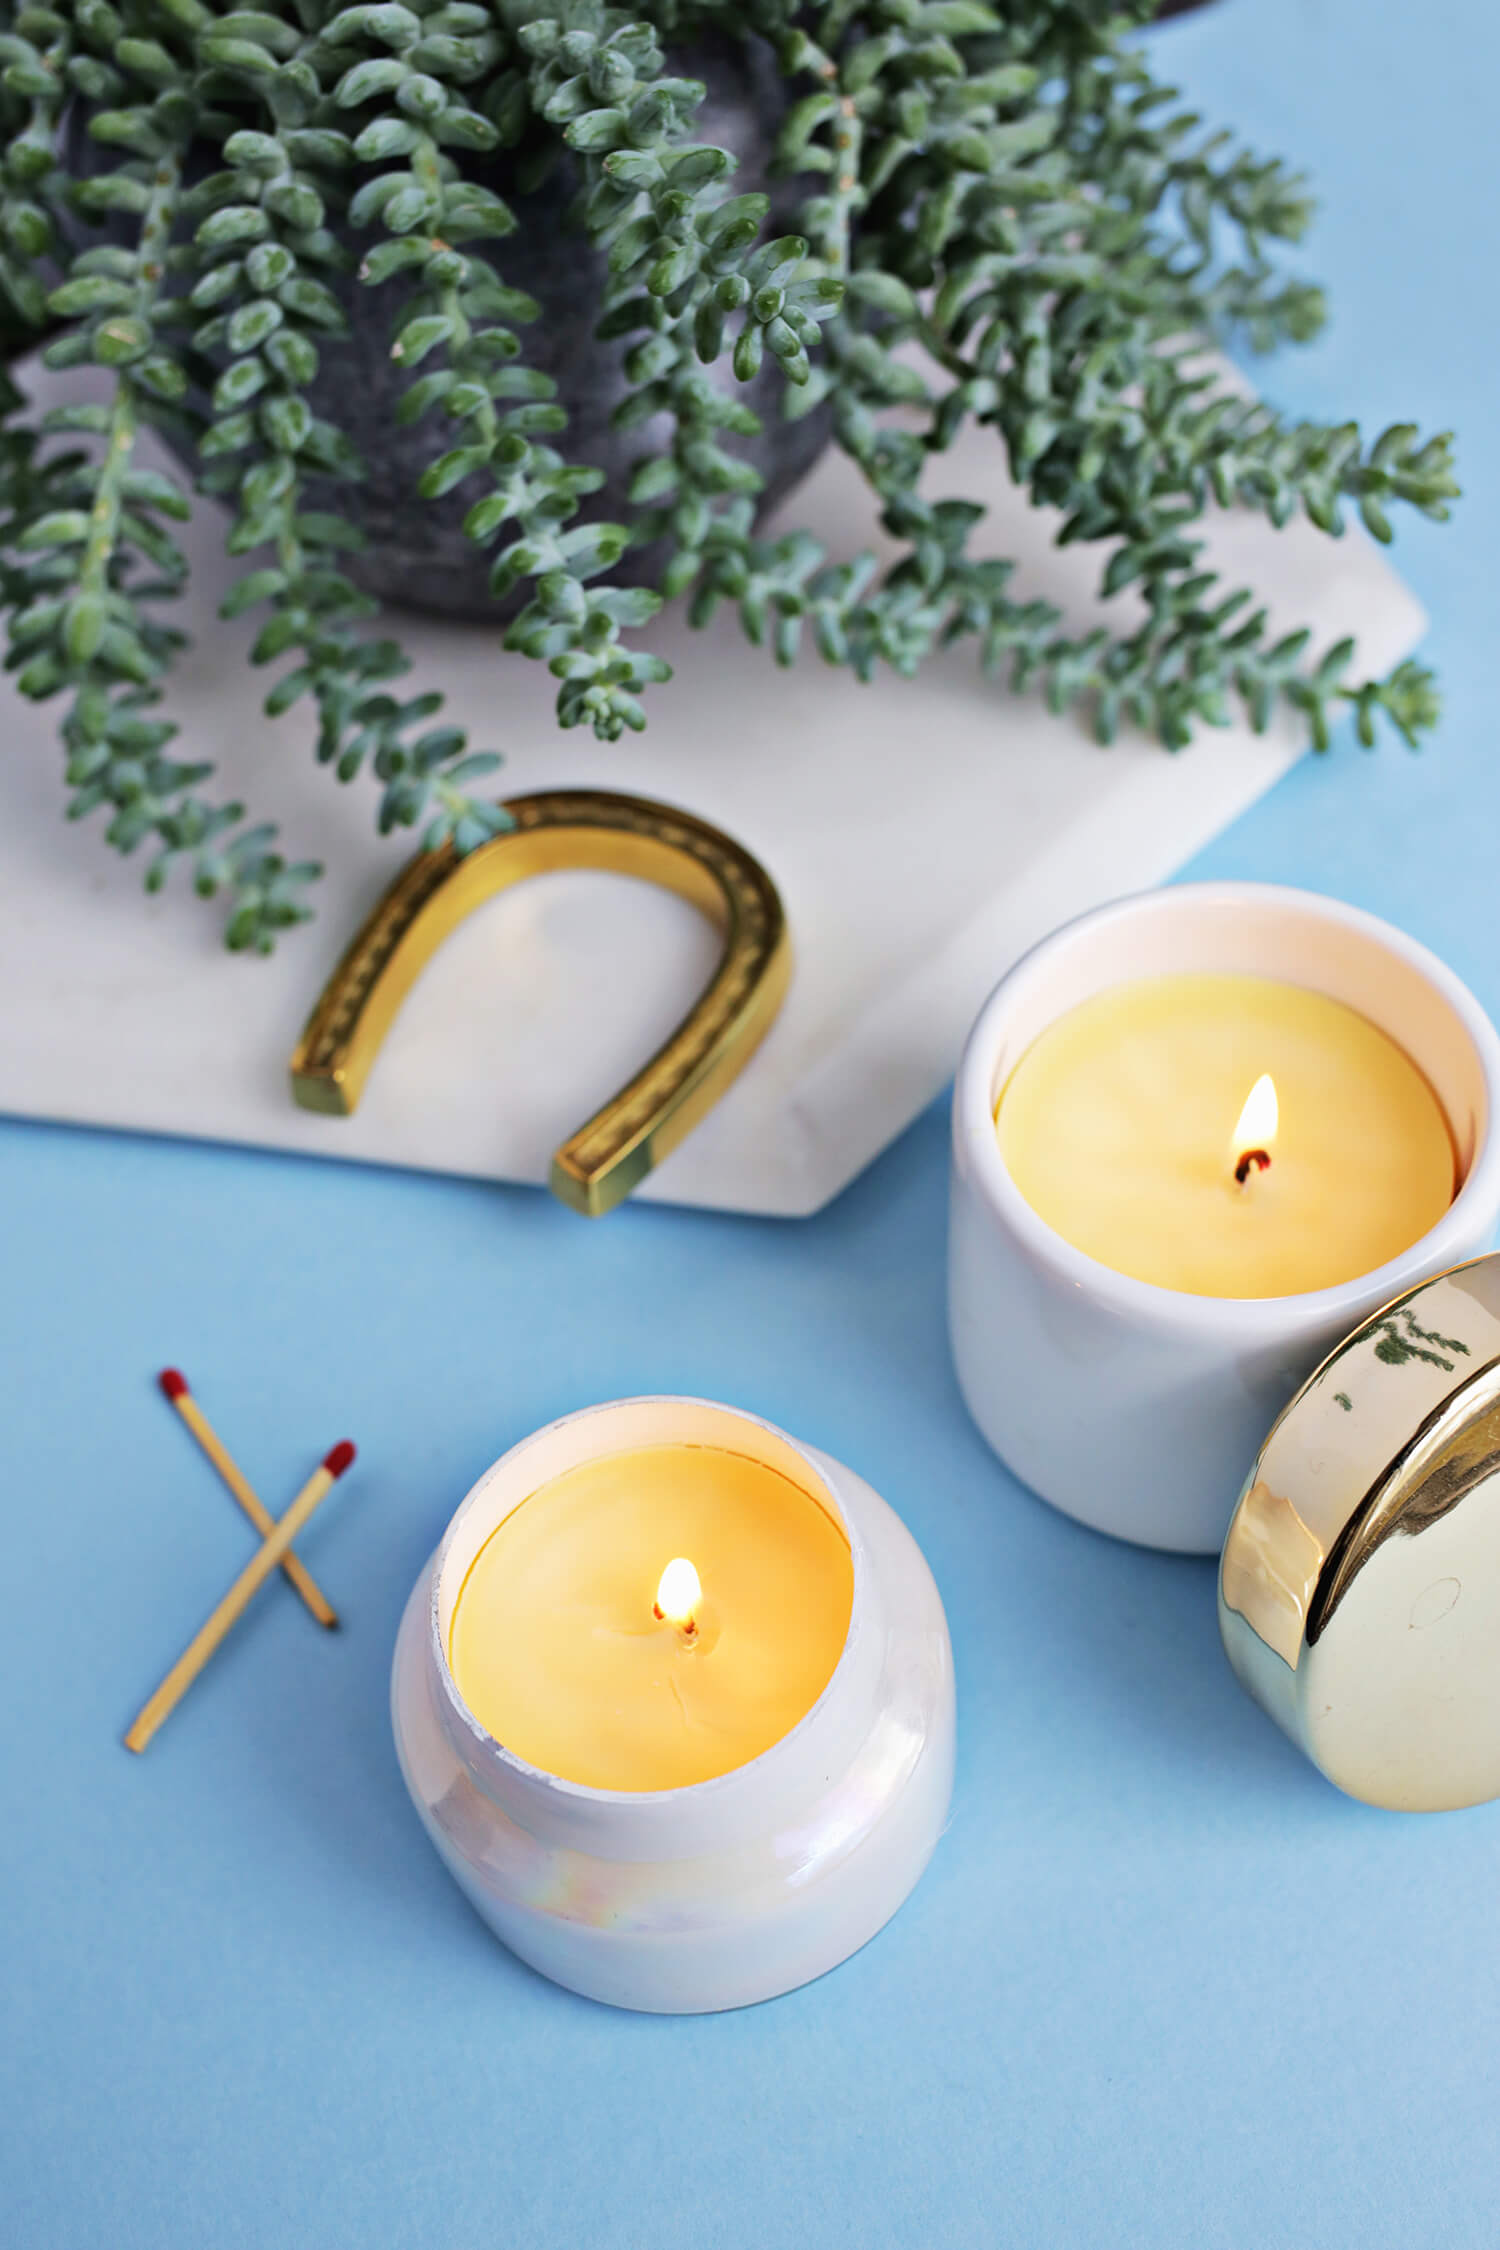 Make Your Own Beeswax Candles! (click through for tutorial)